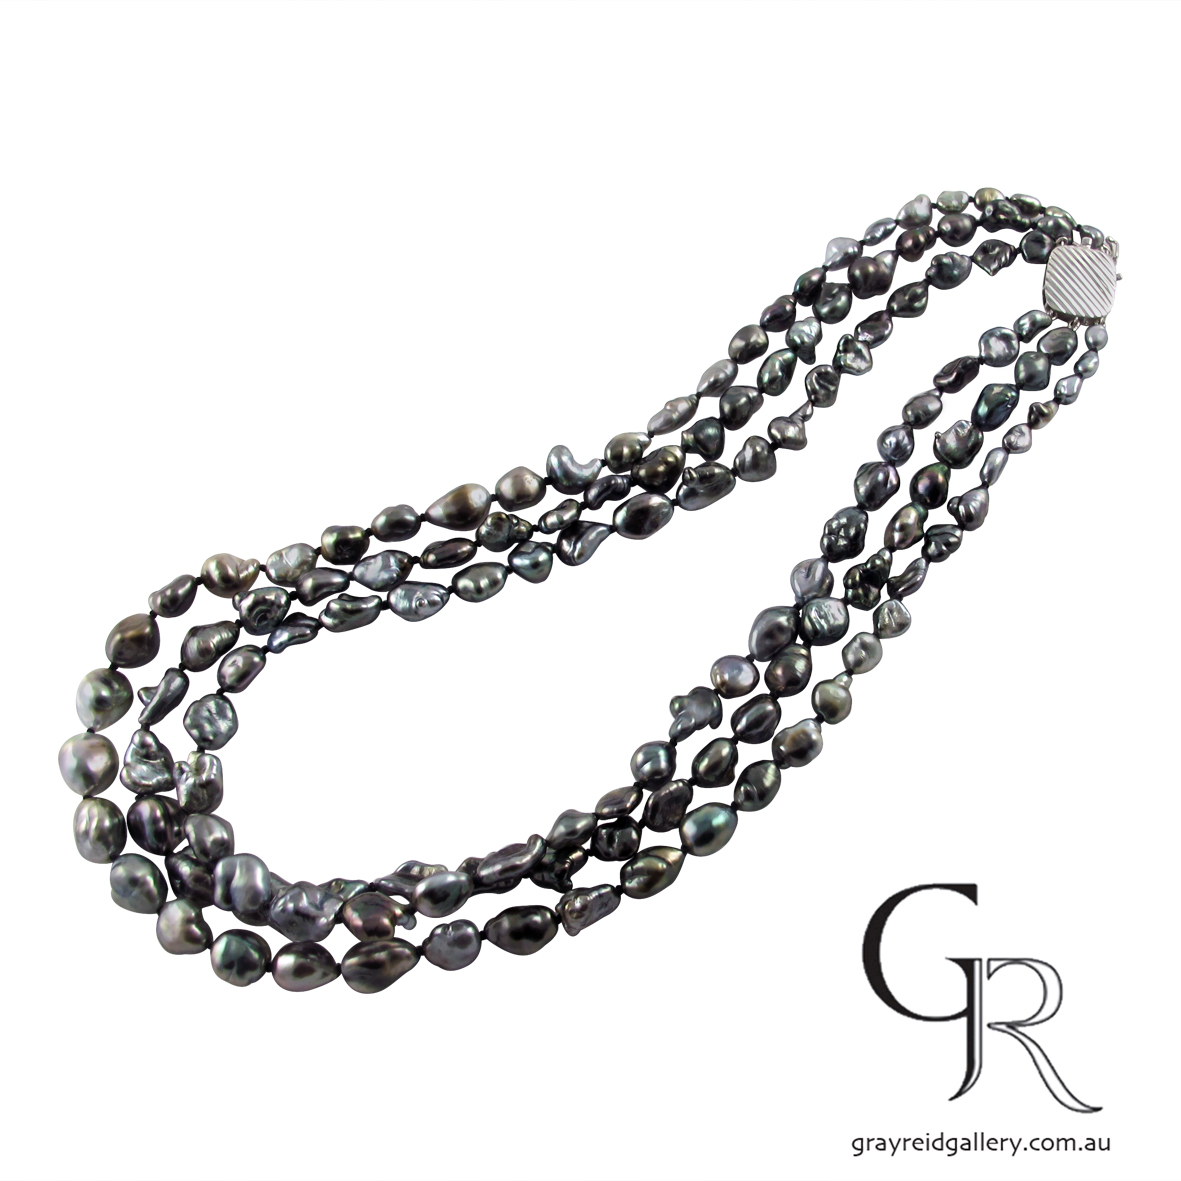 tahitian keshi pearl necklace Gray Reid Gallery.jpg